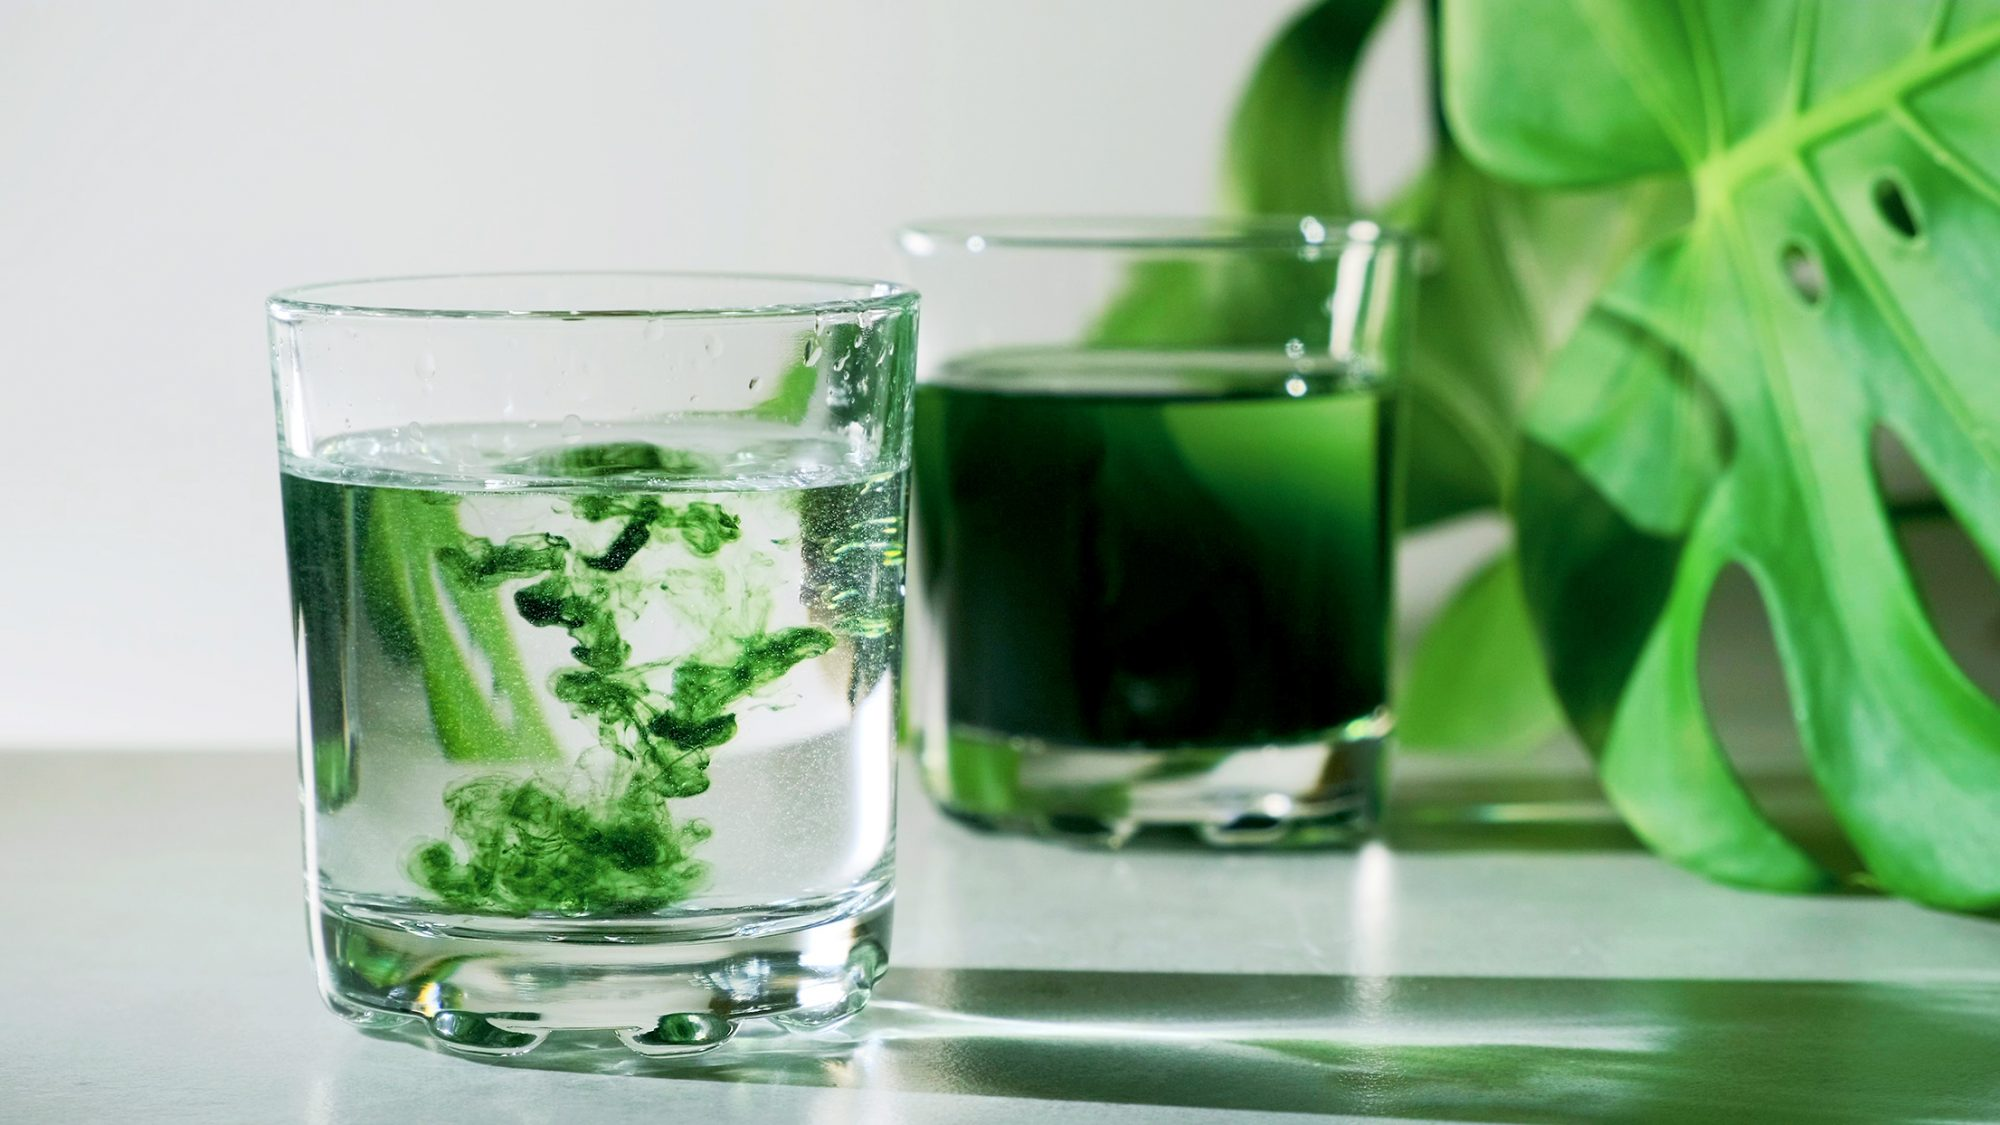 Liquid chlorophyll extract is poured in pure water in glass against a white grey background with green leaf